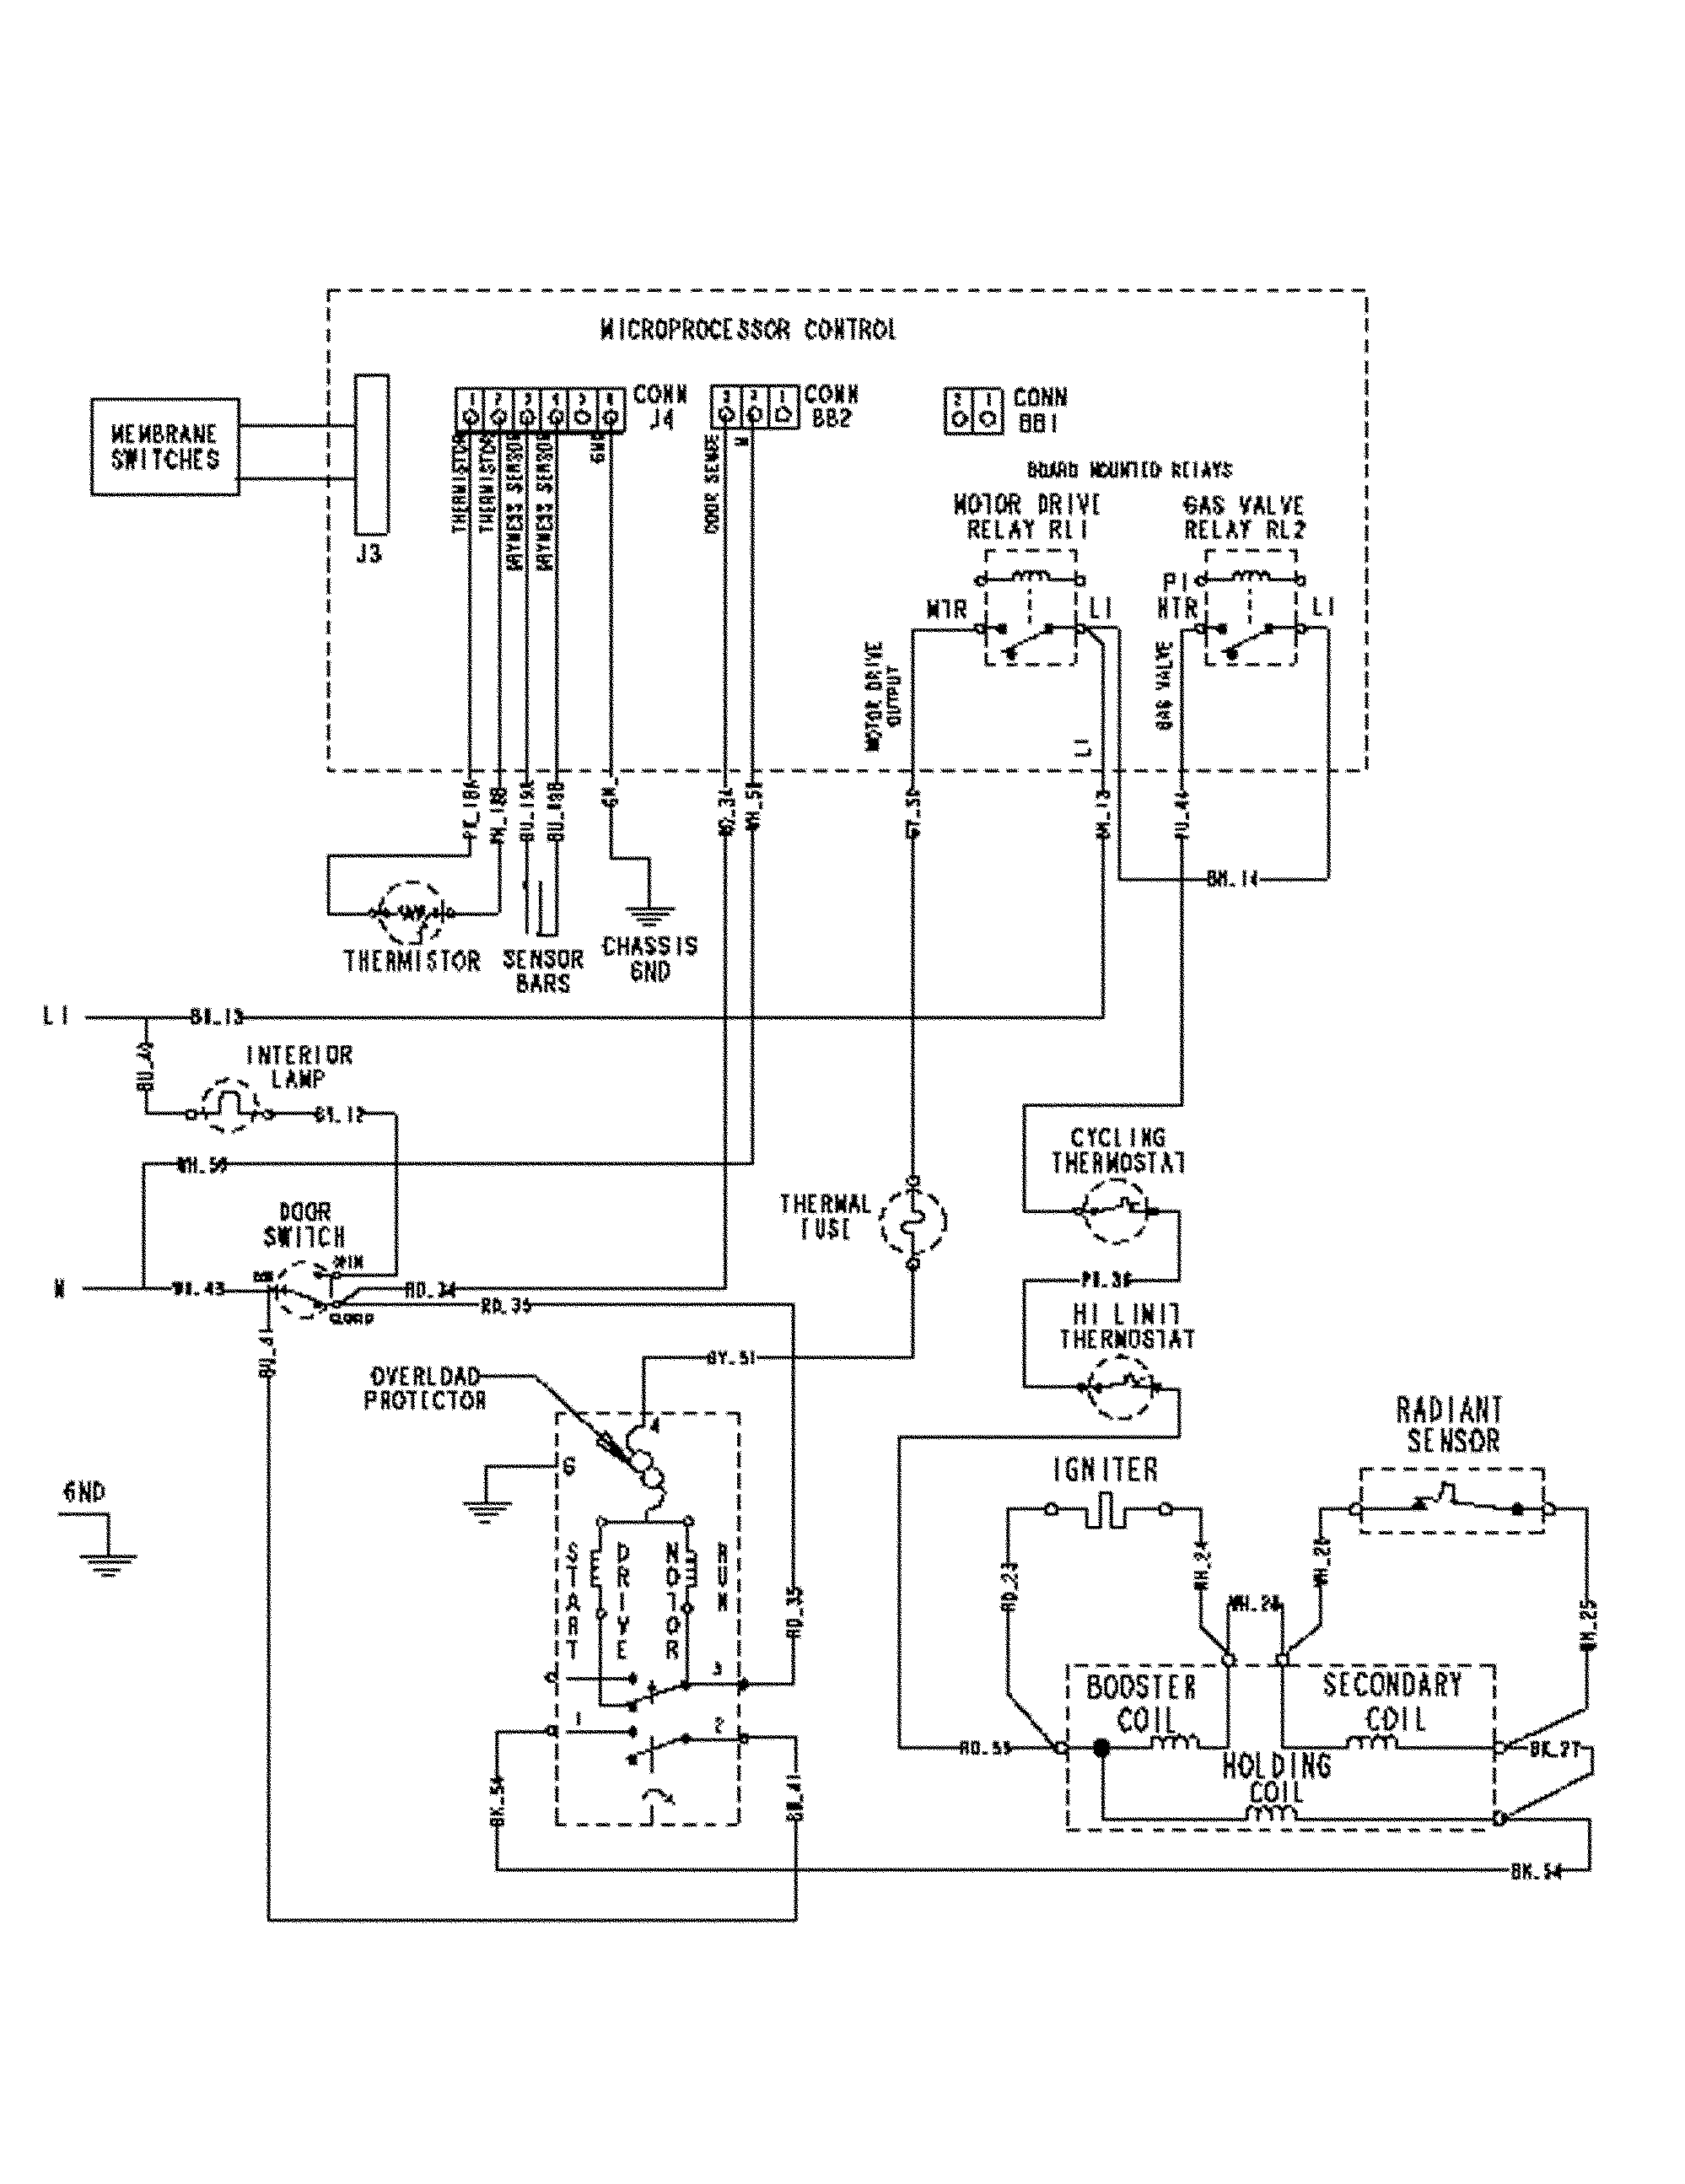 small resolution of maytag microwave wiring diagram